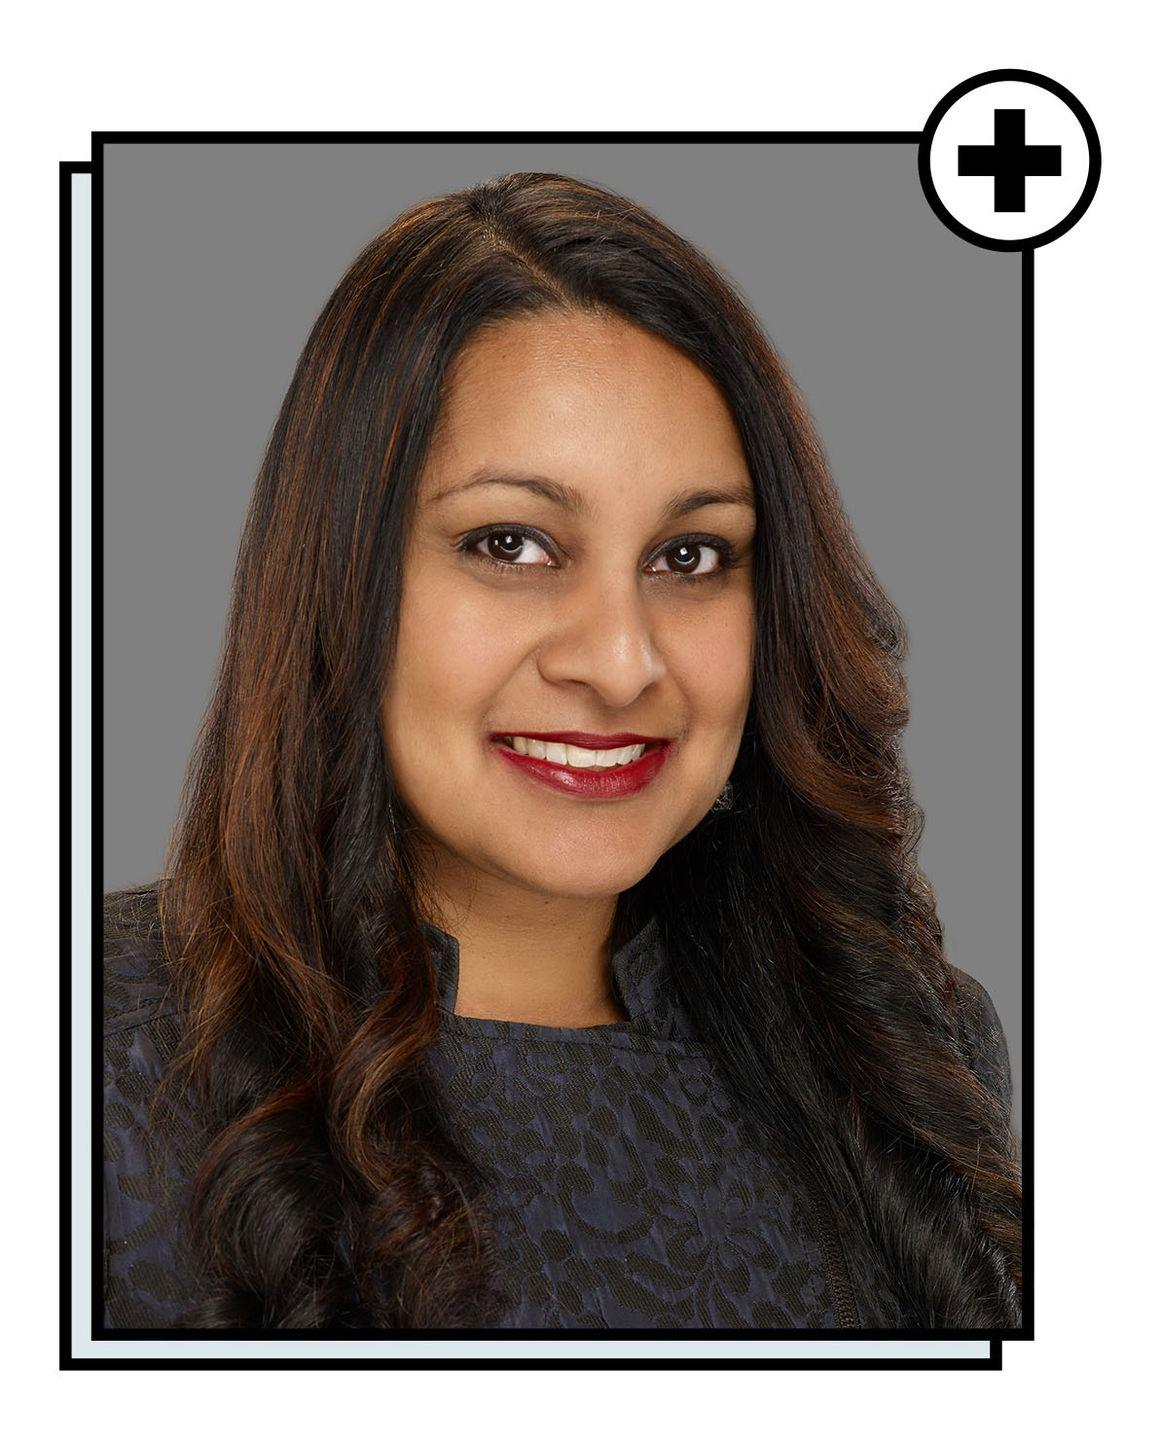 """<p>Rita Kalyani, MD, MHS, is an associate professor of medicine at <a href=""""https://www.hopkinsmedicine.org/som/index.html"""" rel=""""nofollow noopener"""" target=""""_blank"""" data-ylk=""""slk:Johns Hopkins University School of Medicine"""" class=""""link rapid-noclick-resp"""">Johns Hopkins University School of Medicine</a> in the division of Endocrinology, Diabetes & Metabolism. She graduated with an undergraduate degree from Harvard College and completed her medical degree, residency, and fellowship at Johns Hopkins University. Dr. Kalyani is an active clinician and conducts research focusing on diabetes in older adults and sex differences in diabetes. She previously chaired the <a href=""""http://www.diabetes.org/"""" rel=""""nofollow noopener"""" target=""""_blank"""" data-ylk=""""slk:American Diabetes Association"""" class=""""link rapid-noclick-resp"""">American Diabetes Association</a>'s Professional Practice Committee, which oversees the organization's clinical practice guidelines. Dr. Kalyani is also a co-author of the book <em><a href=""""https://www.amazon.com/Diabetes-Head-Toe-Everything-Diagnosis/dp/142142648X"""" rel=""""nofollow noopener"""" target=""""_blank"""" data-ylk=""""slk:Diabetes Head to Toe: Everything You Need to Know About Diagnosis, Treatment, and Living With Diabetes"""" class=""""link rapid-noclick-resp"""">Diabetes Head to Toe: Everything You Need to Know About Diagnosis, Treatment, and Living With Diabetes</a></em>.</p>"""